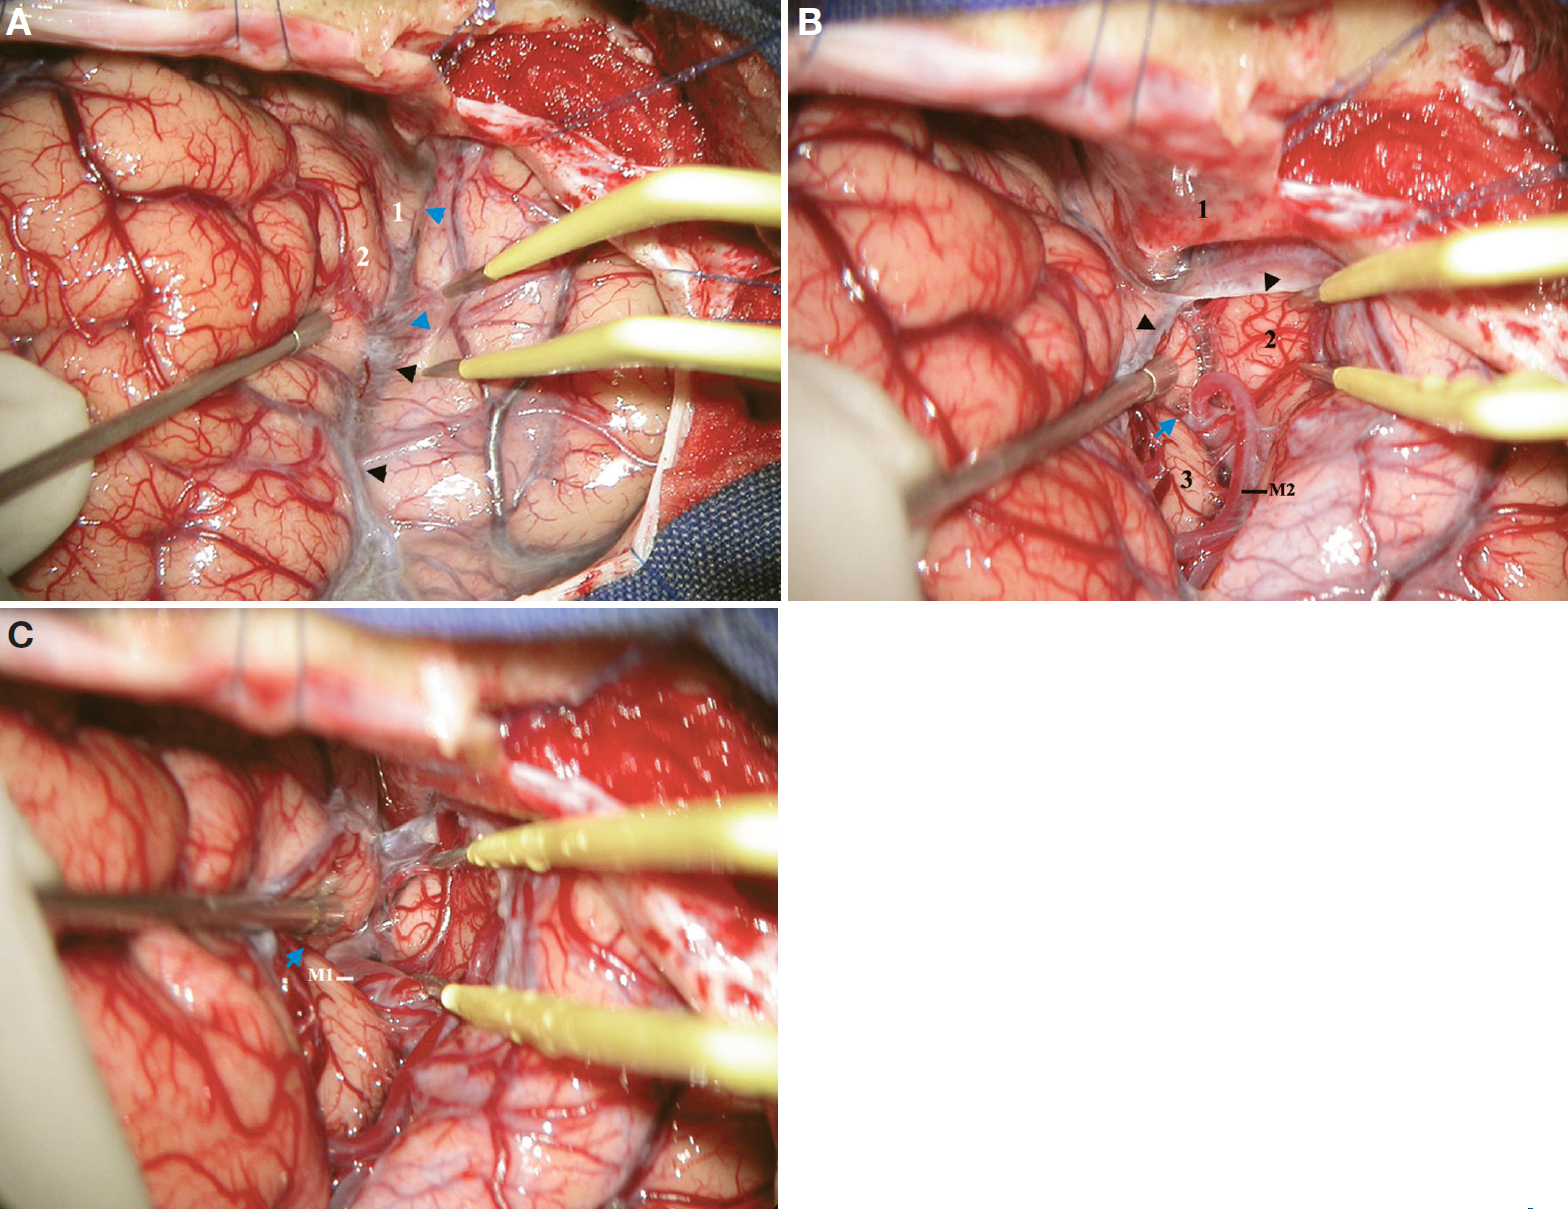 Figure 11. A, intraoperative photograph displaying cerebral exposure after a standard right pterional craniotomy. The tip of the suction tube has retracted the pars triangularis medially. 1, posterior orbital gyrus; 2, lateral orbital gyrus (pars orbitalis). The blue arrowheads indicate frontotemporal arachnoid reflection on the basal surface. The black arrowheads indicate frontotemporal arachnoid reflection on the lateral surface. B, continuation of A. The frontotemporal arachnoid membrane has been split to display the anterior opercular compartment of the sylvian fissure on the basal surface. 1, lesser wing of the sphenoid; 2, planum polare; 3, insular apex. The posterior orbital gyrus is retracted medially by the tip of the suction tube. The black arrowheads indicate the frontotemporal arachnoid membrane. The blue arrow indicates the beginning of the anterior insular cleft. C, continuation of B. The frontotemporal arachnoid membrane and the anterior opercular compartment have been further split to display the anterior insular compartment. The M1 segment of the MCA courses in the lower part of the anterior operculoinsular compartment (sphenoidal compartment). The blue arrow indicates the anterior insular cleft. (Images courtesy of AL Rhoton, Jr.)